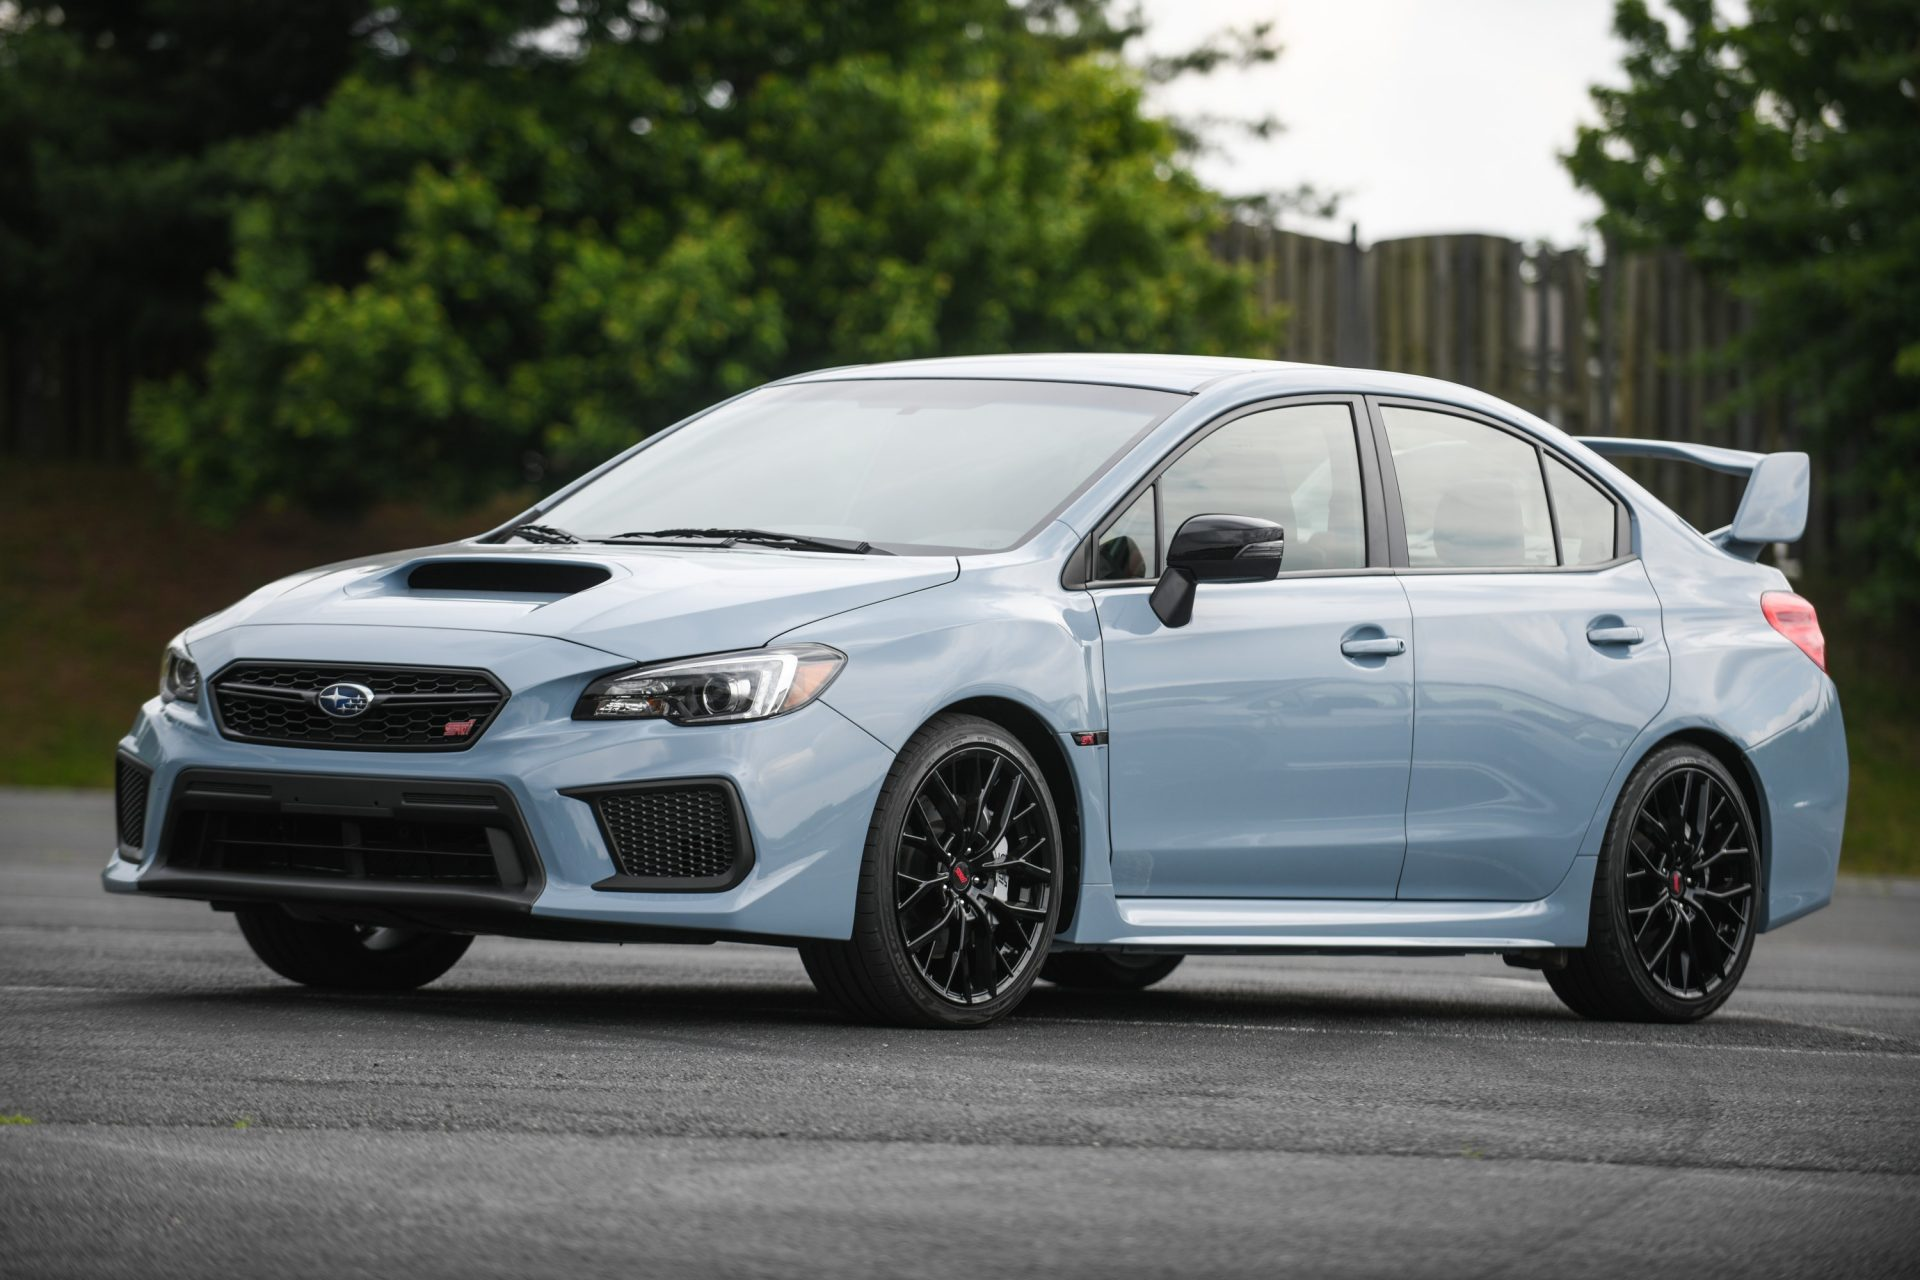 The New Special Edition Subaru STI Should be the Standard 3